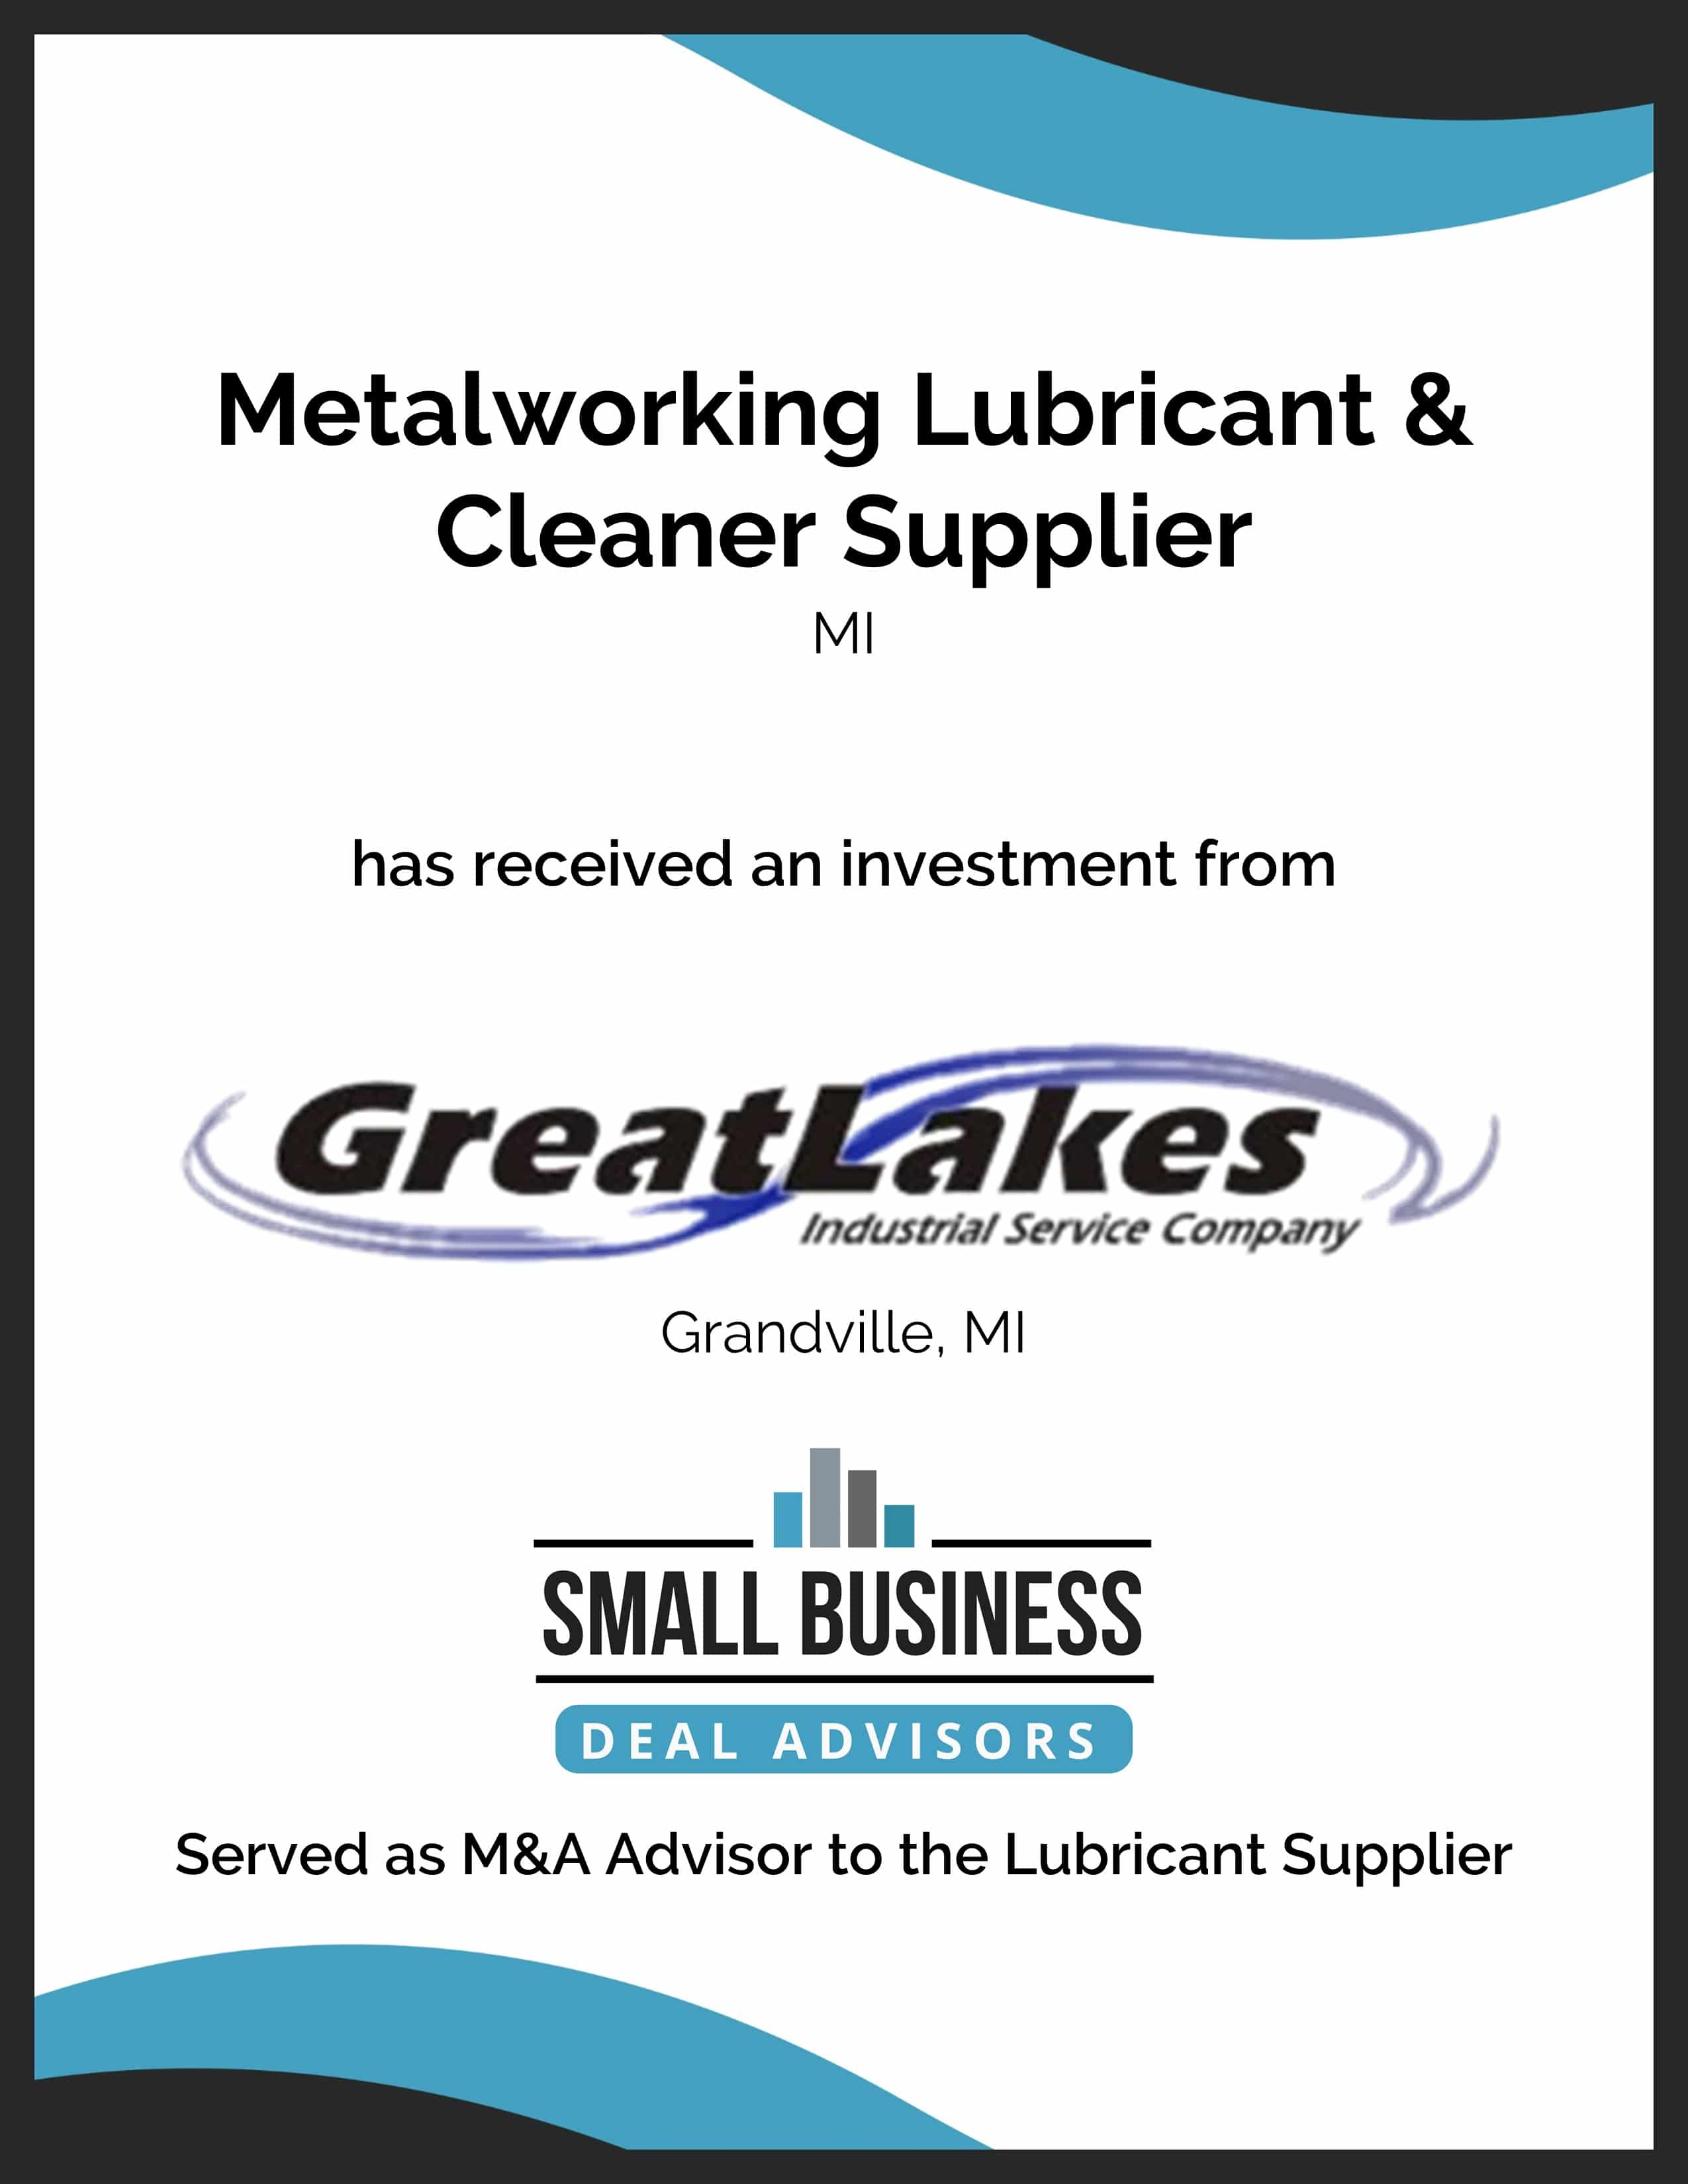 Great Lakes Industrial Services Invests in Metalworking Supplier2